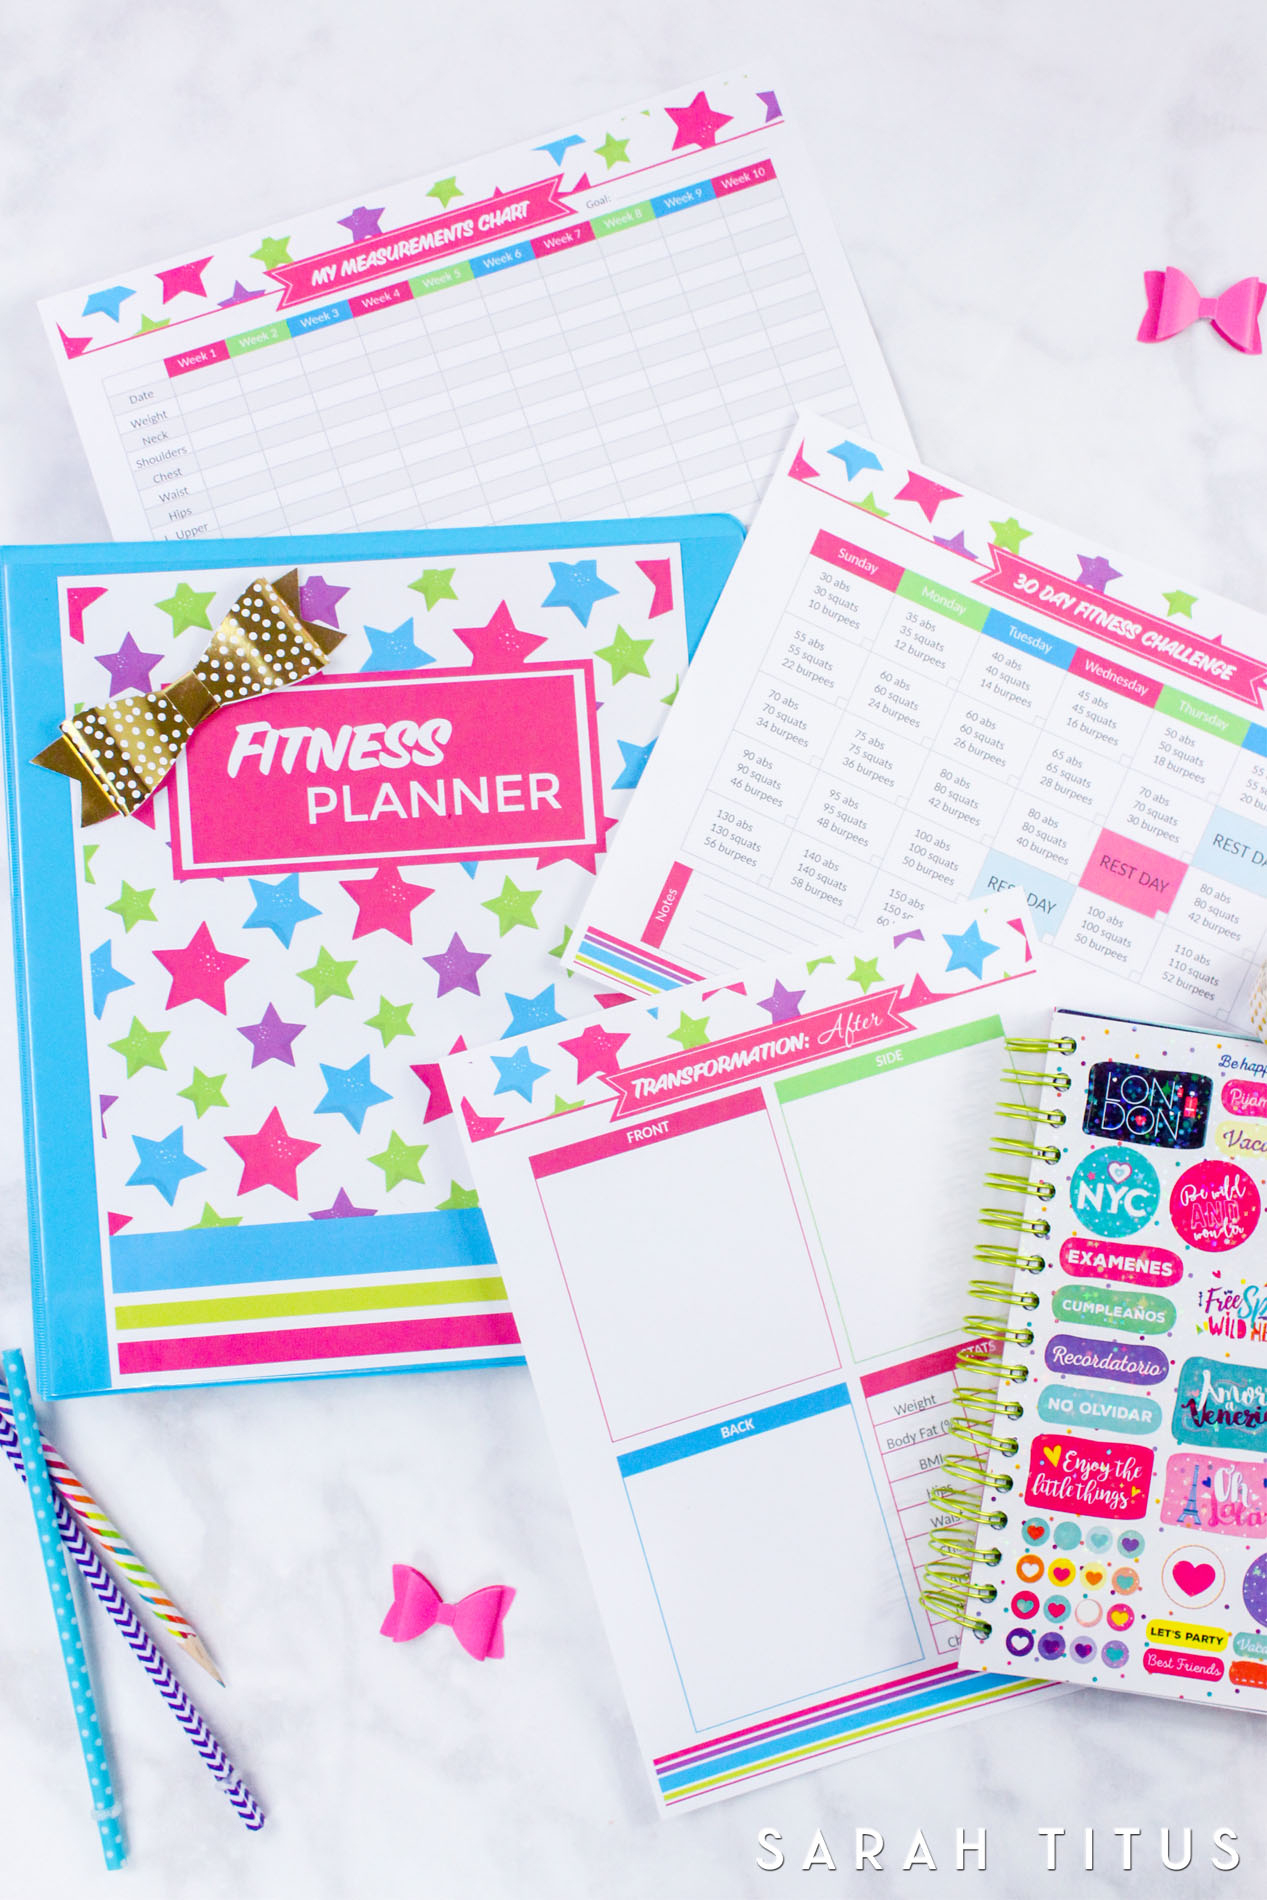 Fitness Planner - Sarah Titus - Free Printable Fitness Planner